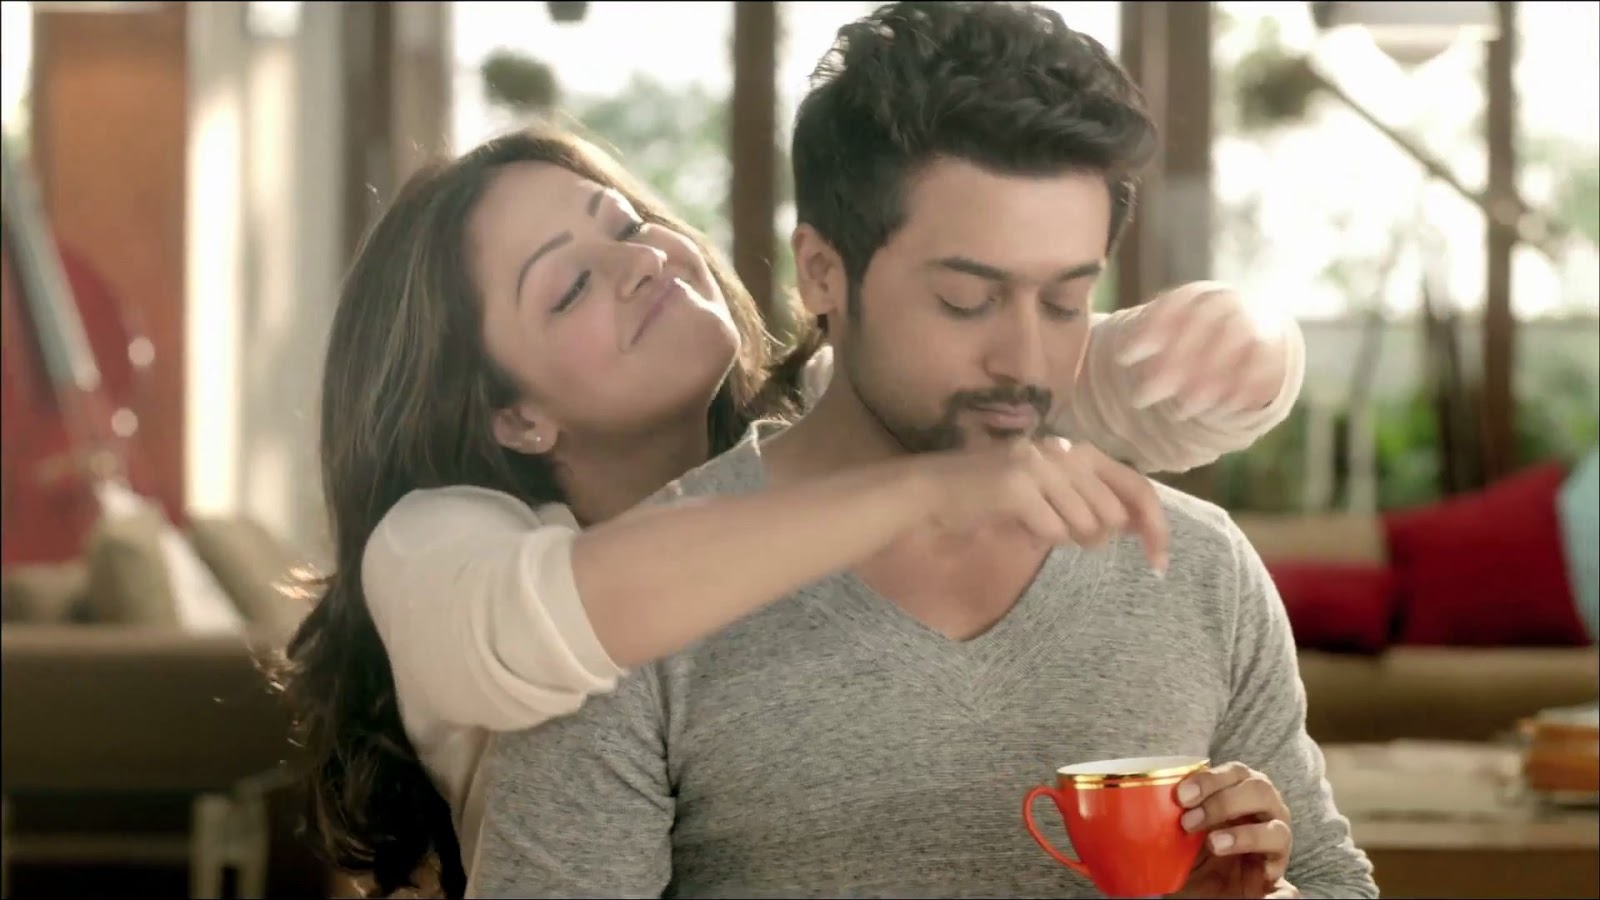 Suriya Movie Stills Photos Wallpapers: Actor Surya And Jyothika Coffee Add Images In HD